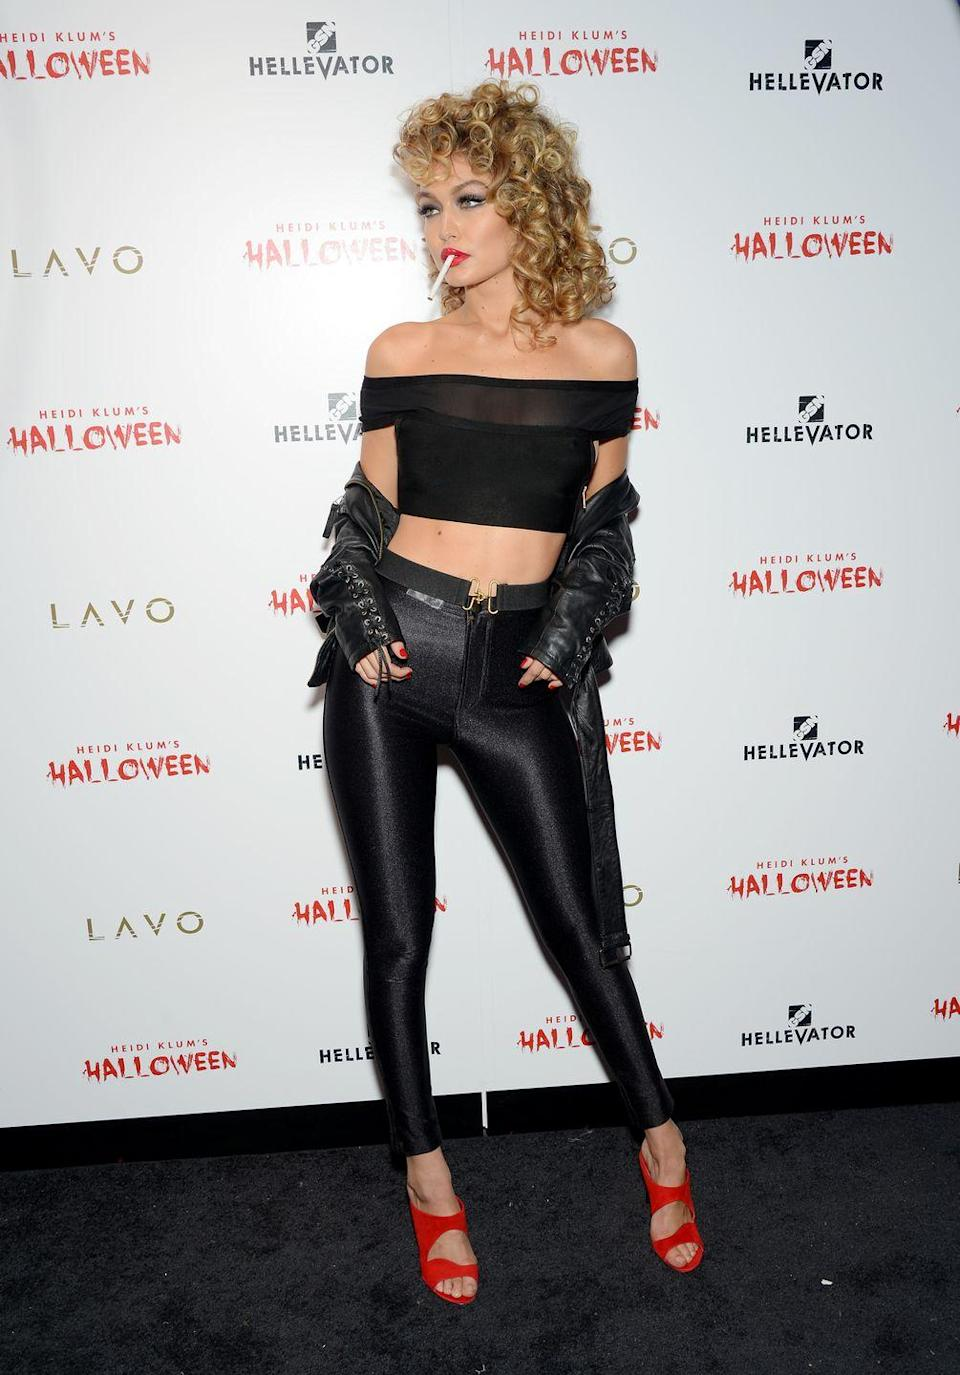 "<p>'Grease' is definitely the word! Model Gigi Hadid stole the show with this stunning post-makeover Sandy costume from <em><a href=""https://www.amazon.com/Grease-Randal-Kleiser/dp/B0026SFEW8/?linkCode=ogi&tag=goodhousekeeping_auto-append-20&ascsubtag=[artid